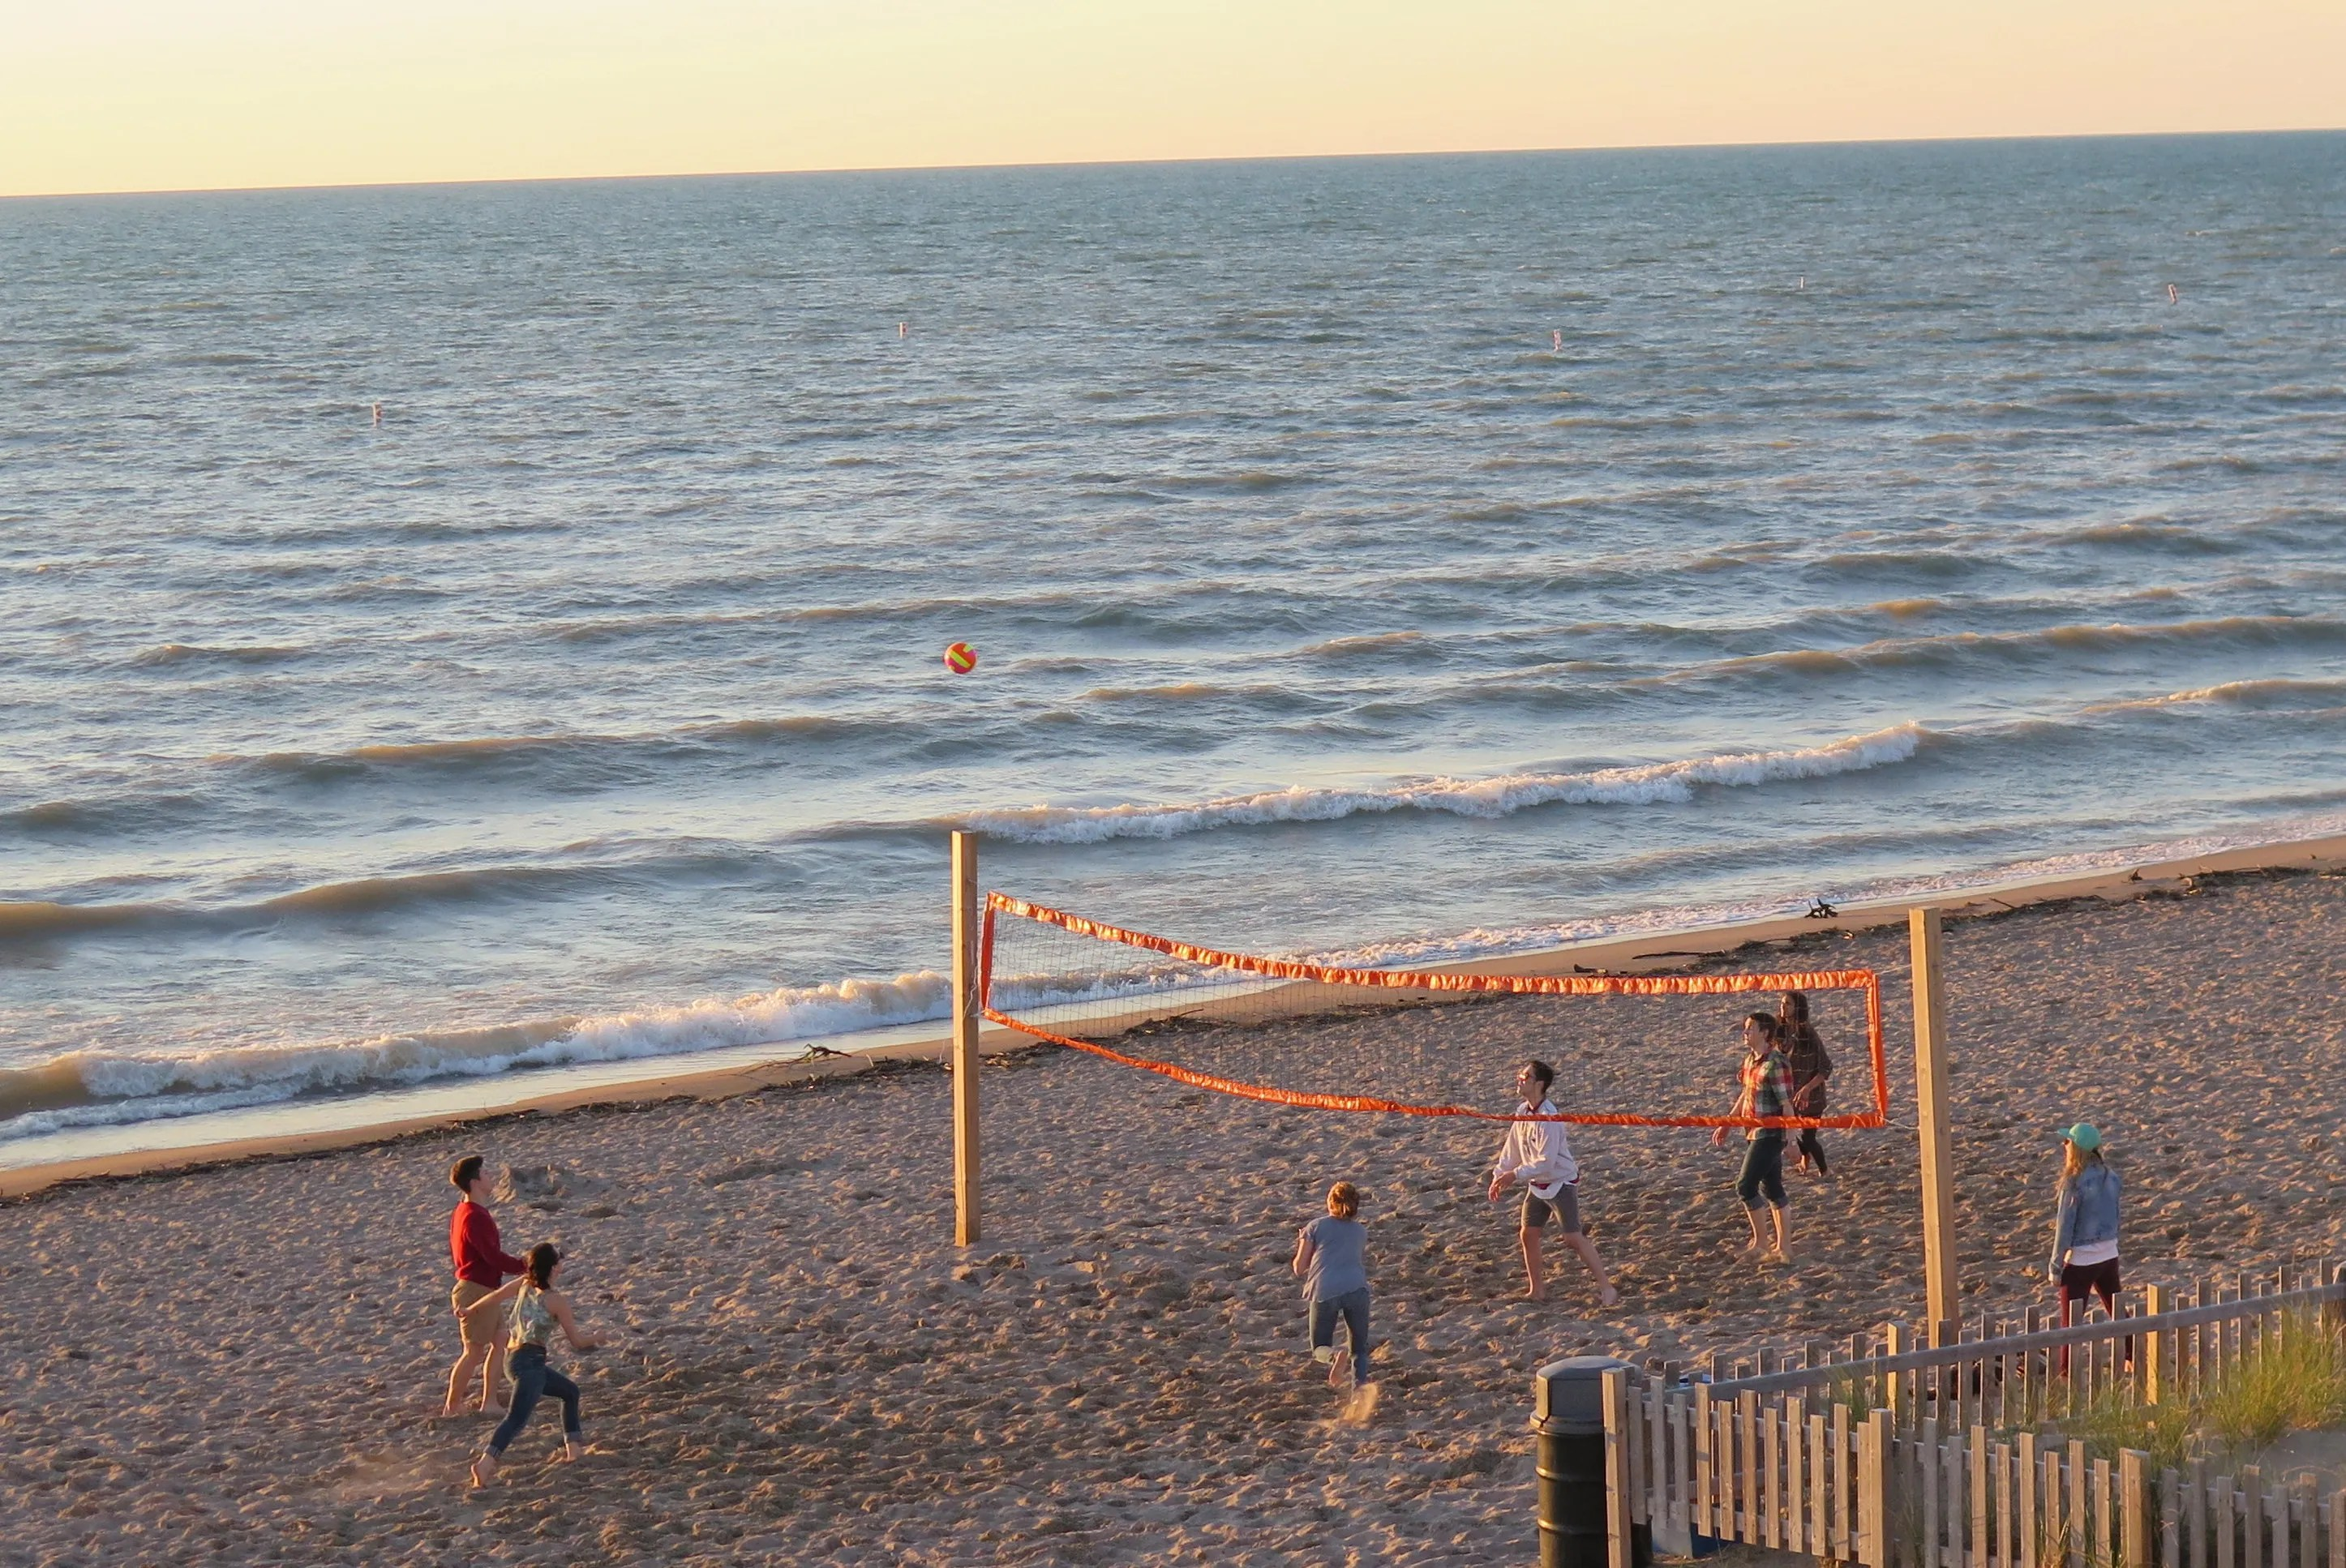 A game of beach volleyball on the sand in Grand Bend. JIM BYERS PHOTO